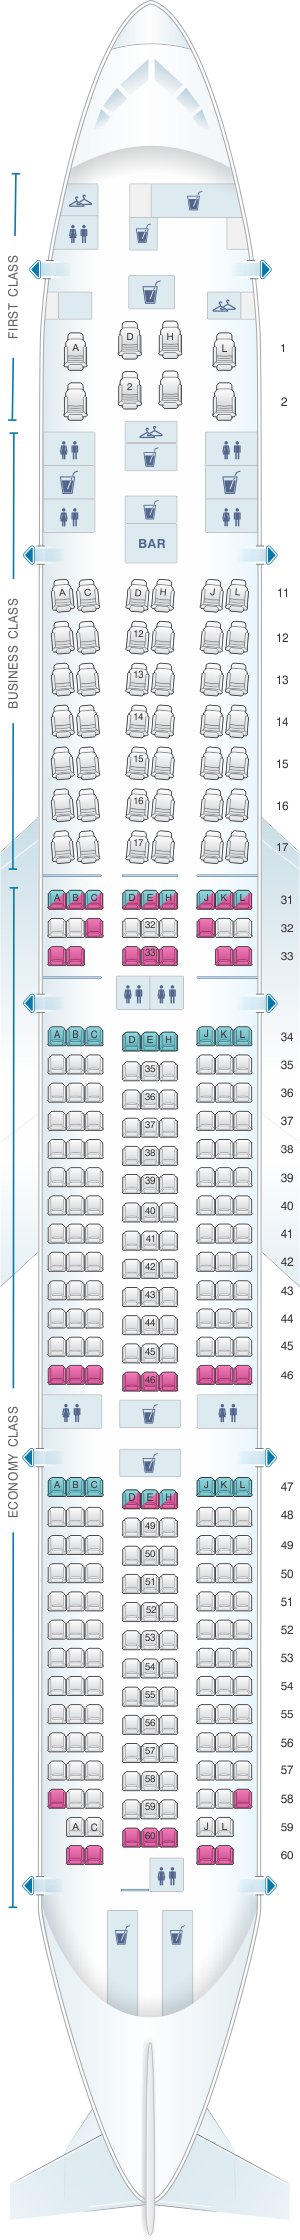 Seat map for Air China Boeing B777 300ER (311PAX)